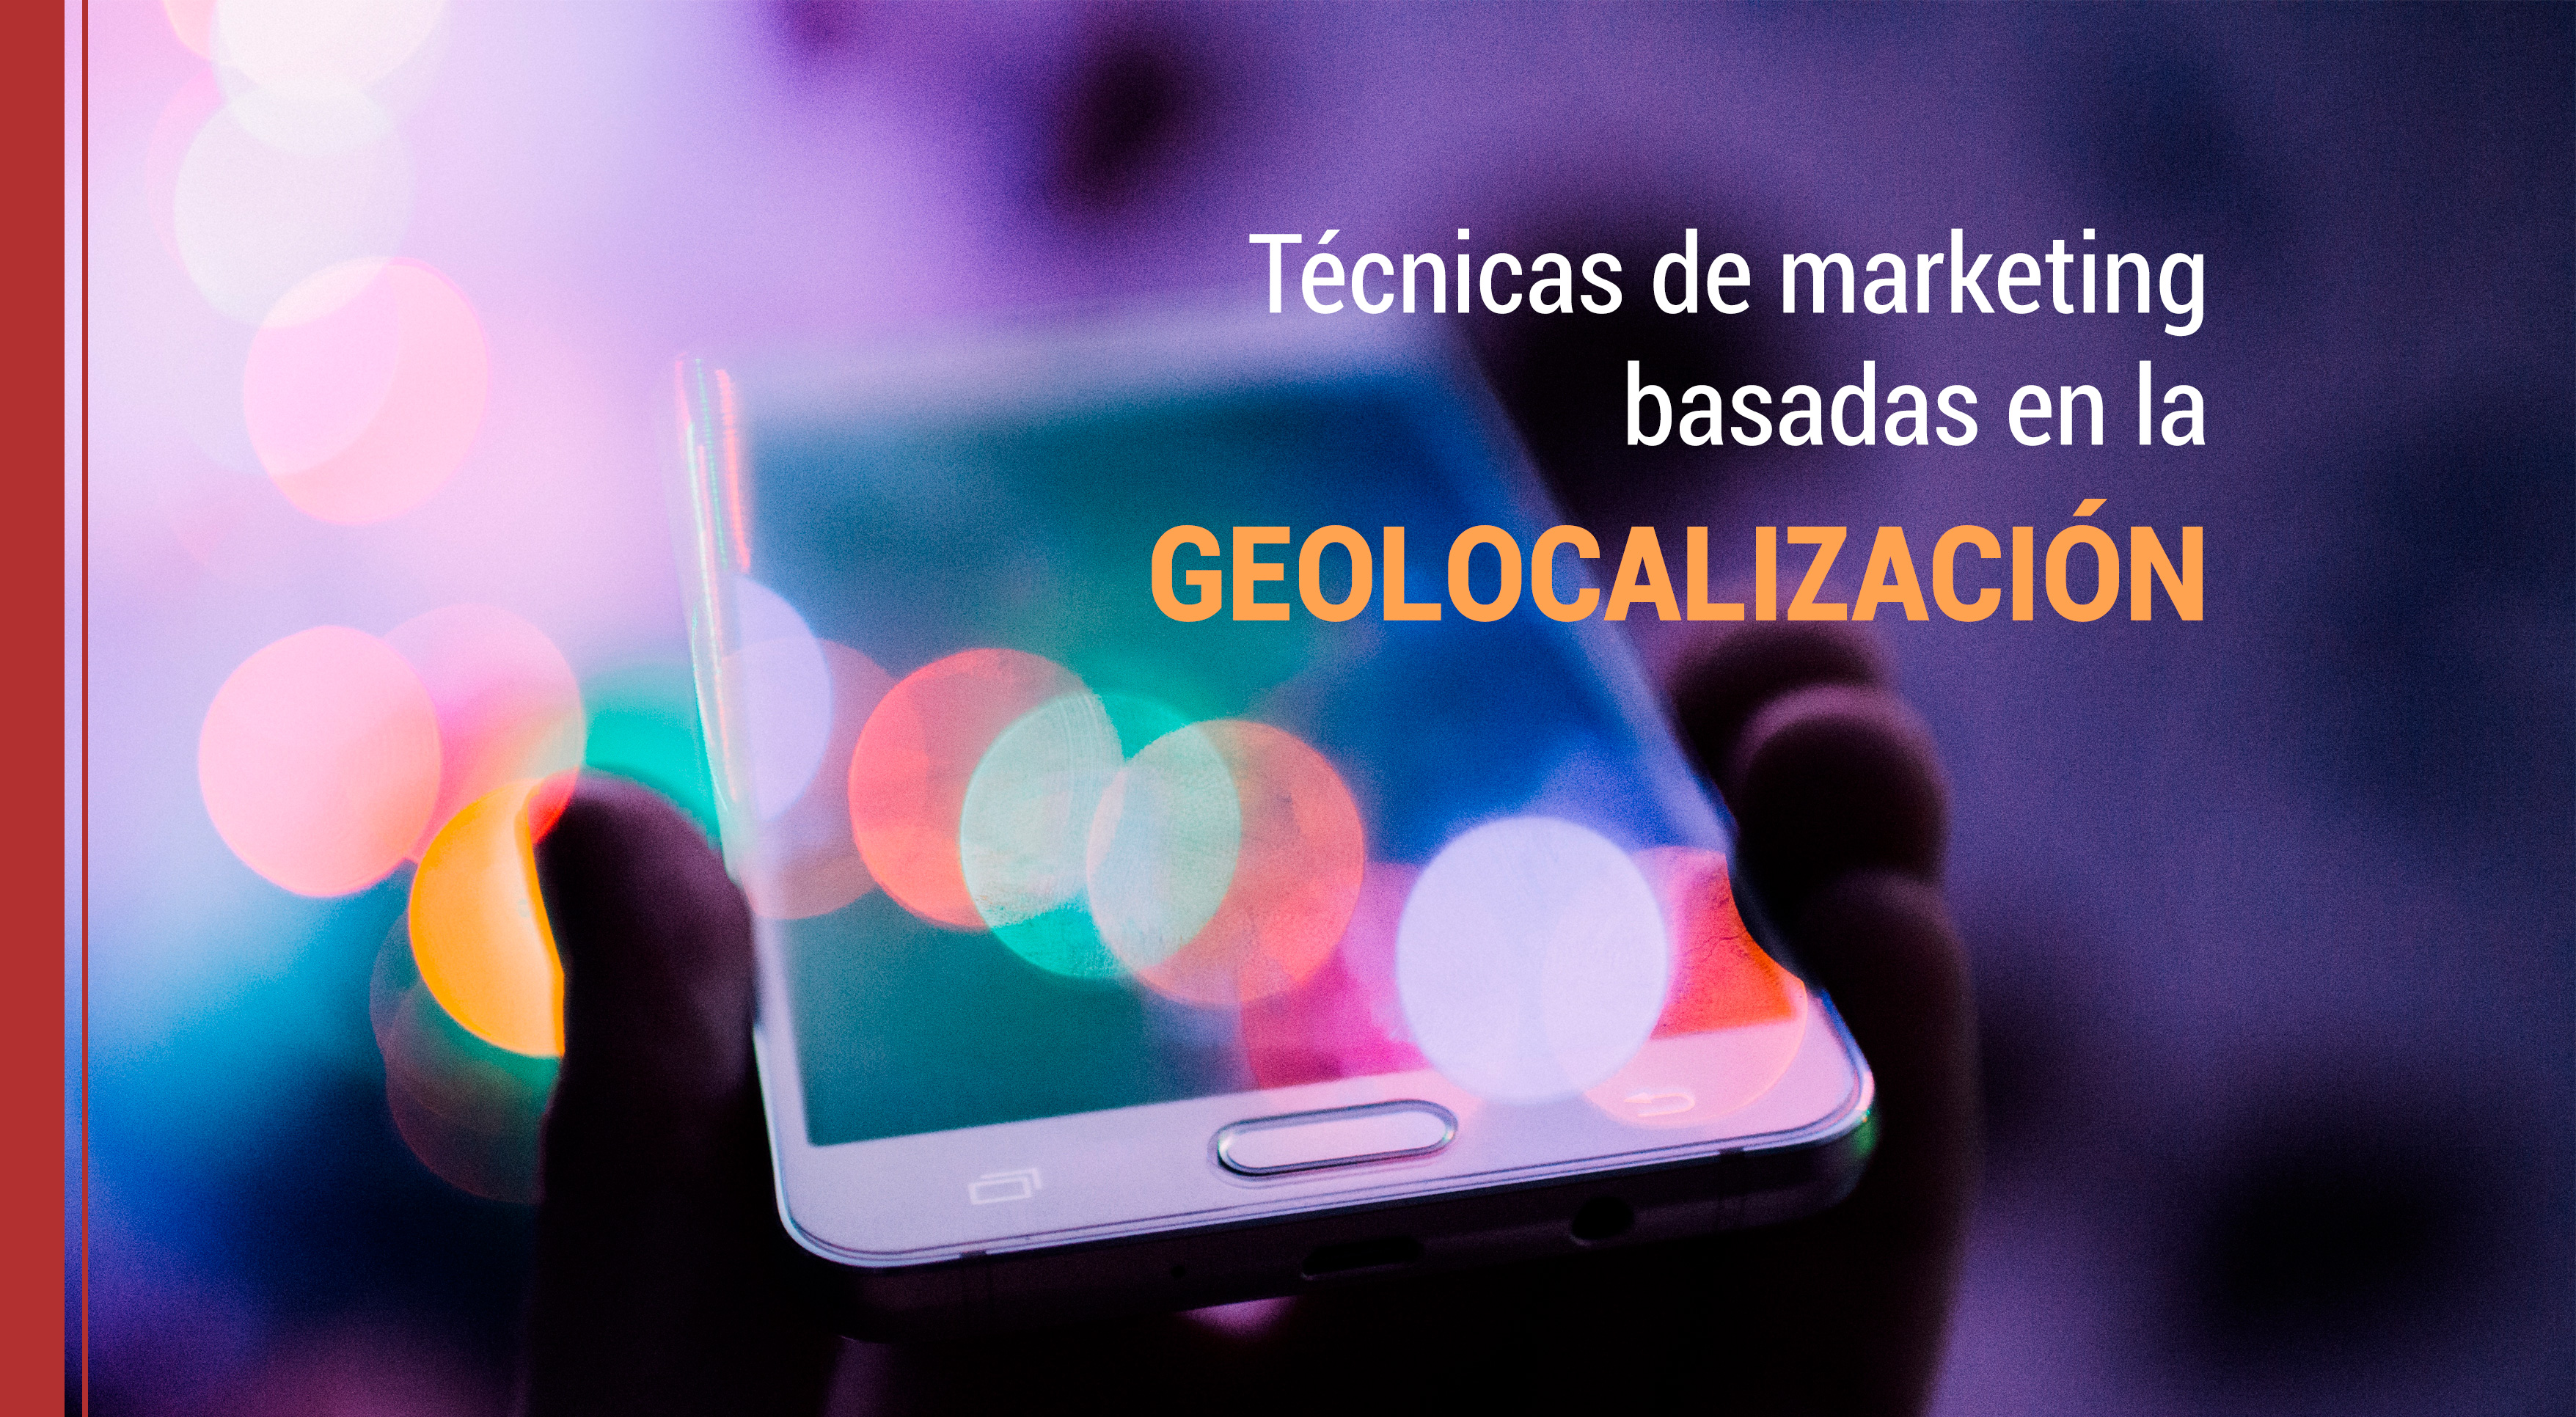 tecnicas de marketing que aplican la geolocalizacion